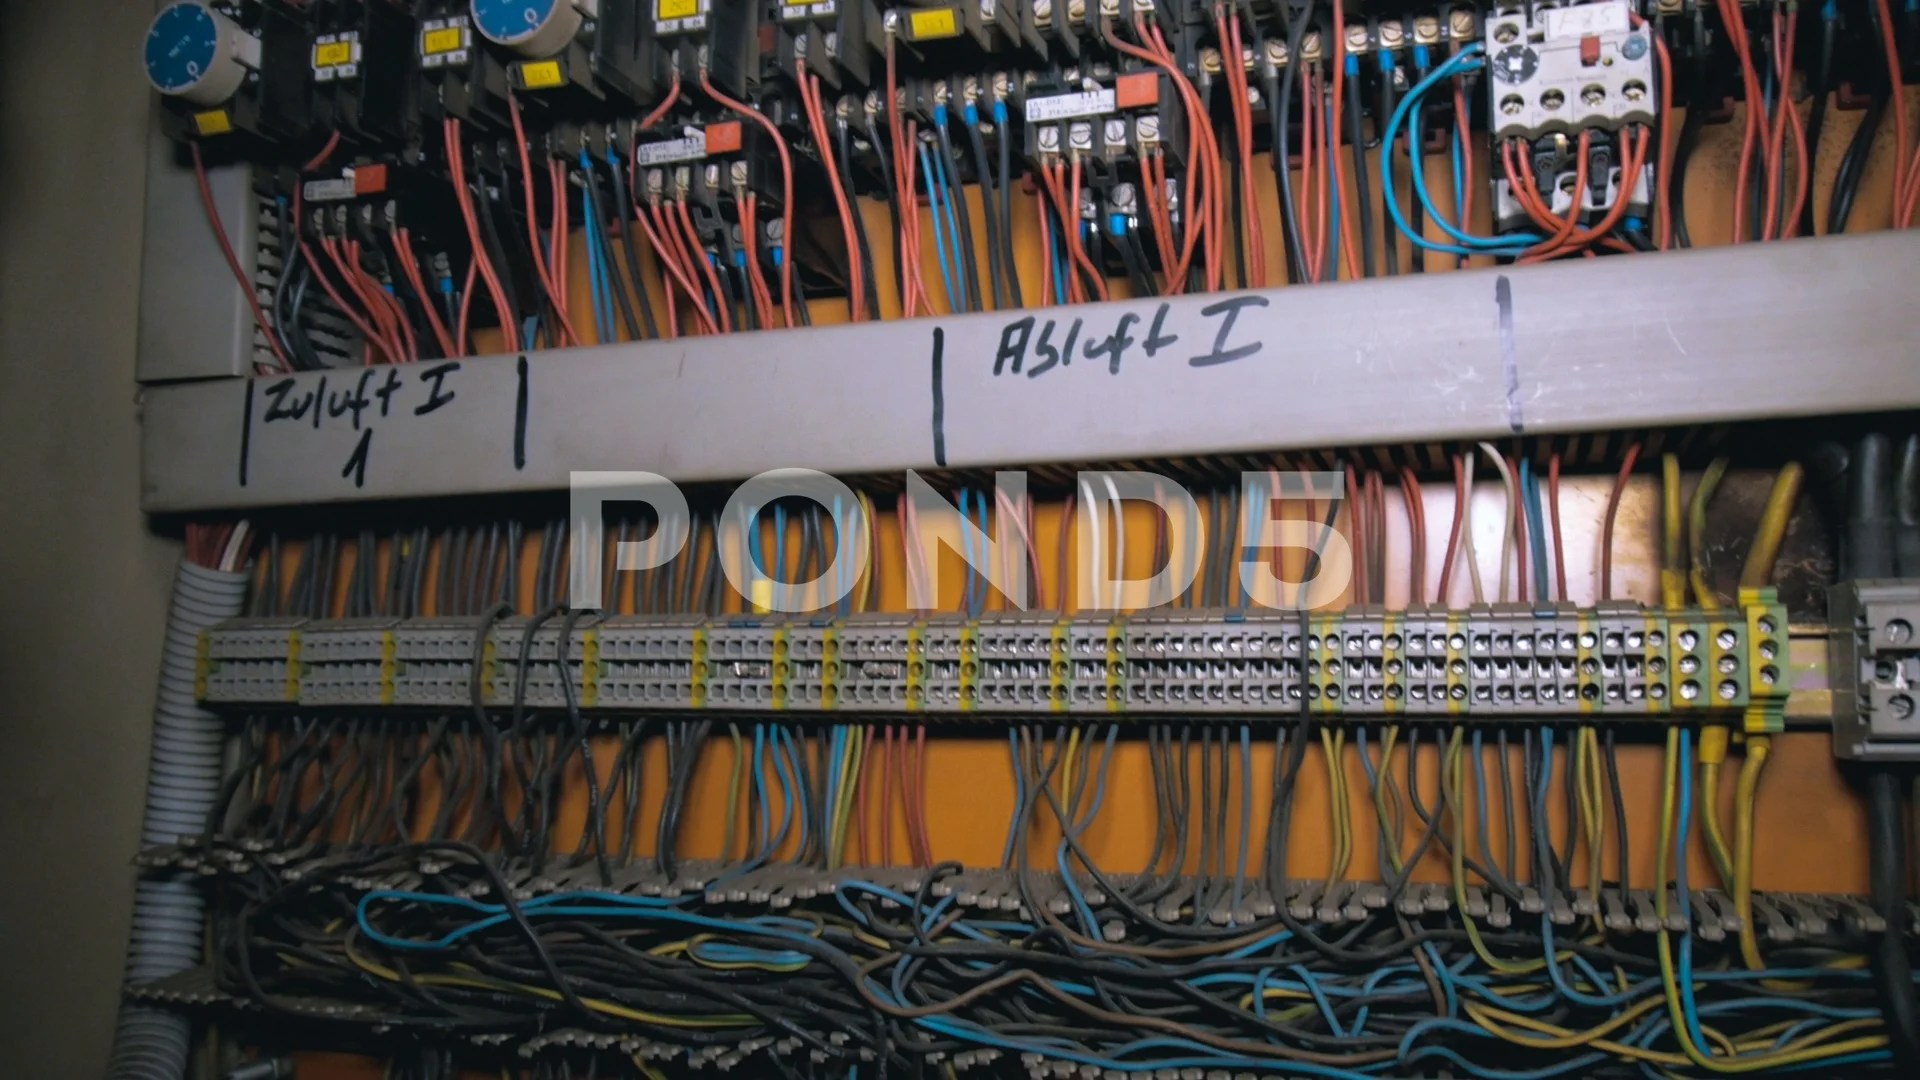 hight resolution of video old electric fuse box in abandonded lost factory in germany 97454079